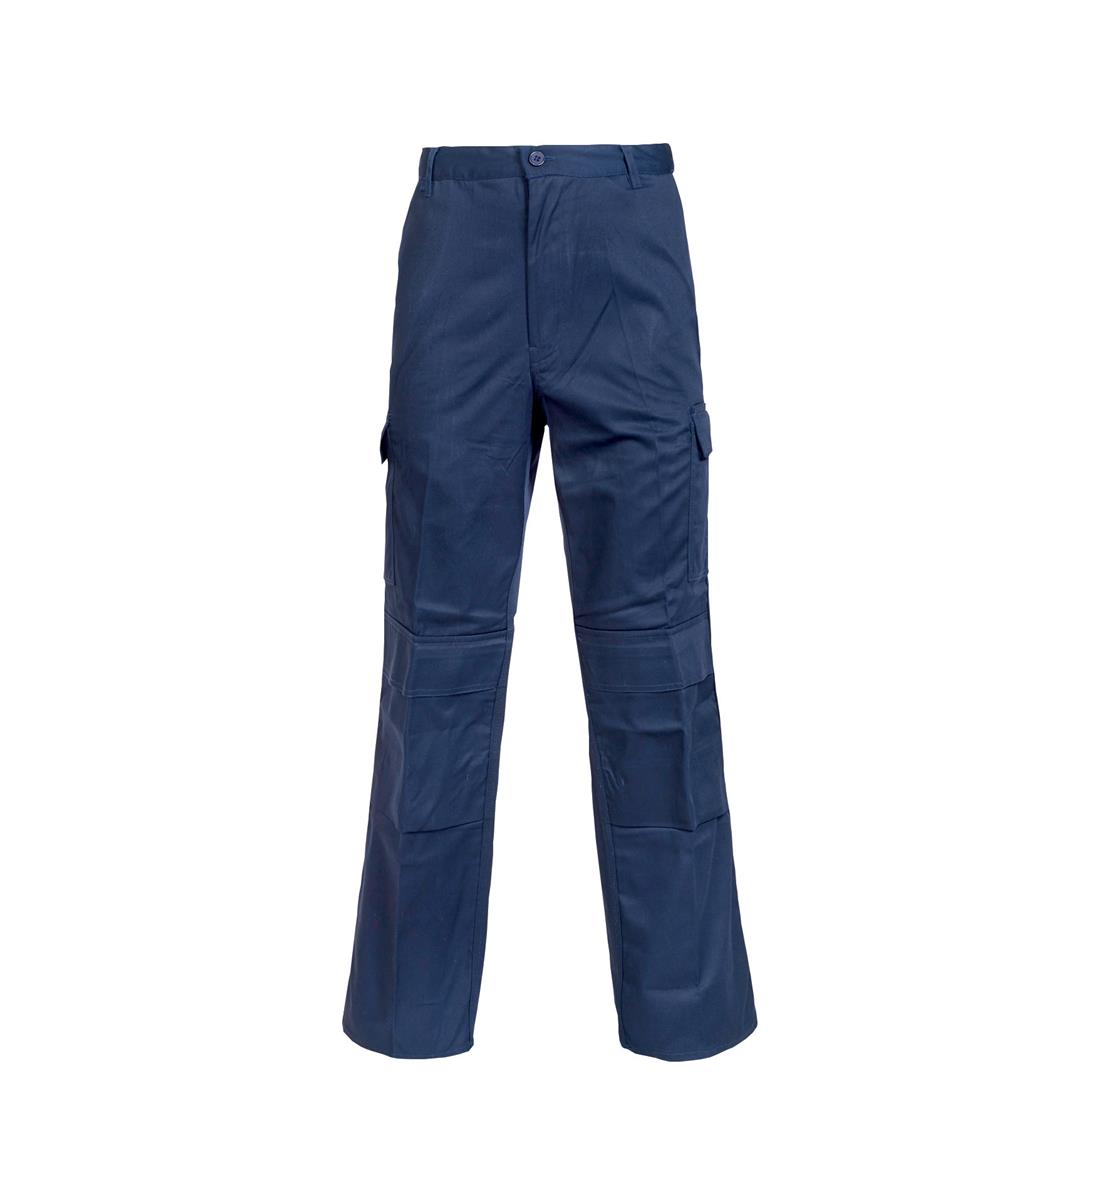 Combat Trousers Polycotton with Pockets 38in Long Navy Blue Ref PCTHWN38T *1-3 Days Lead Time*